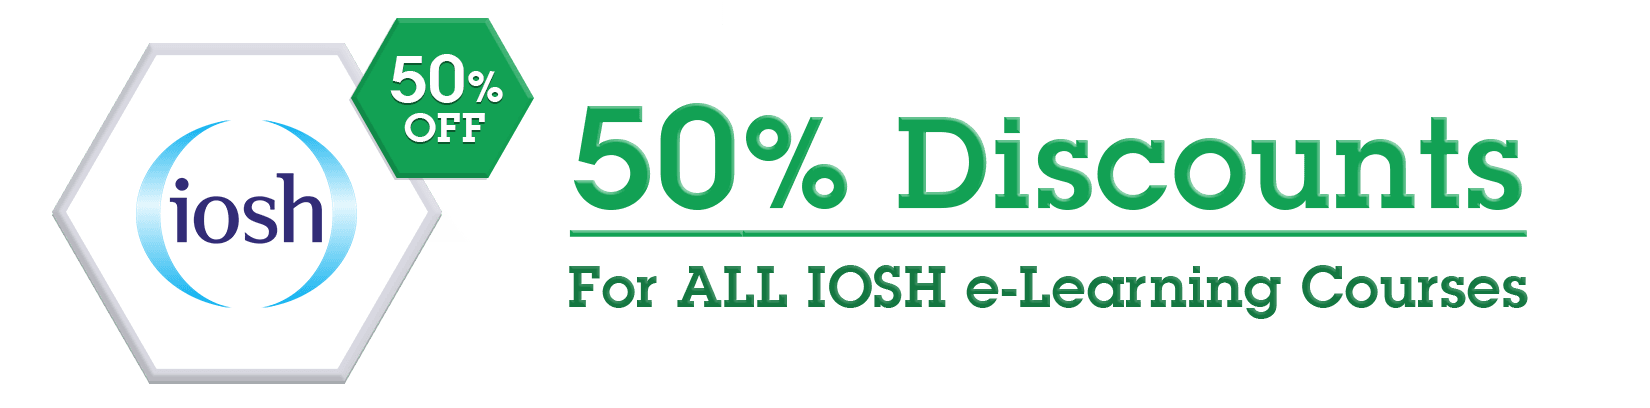 IOSH Discount Offer 50%